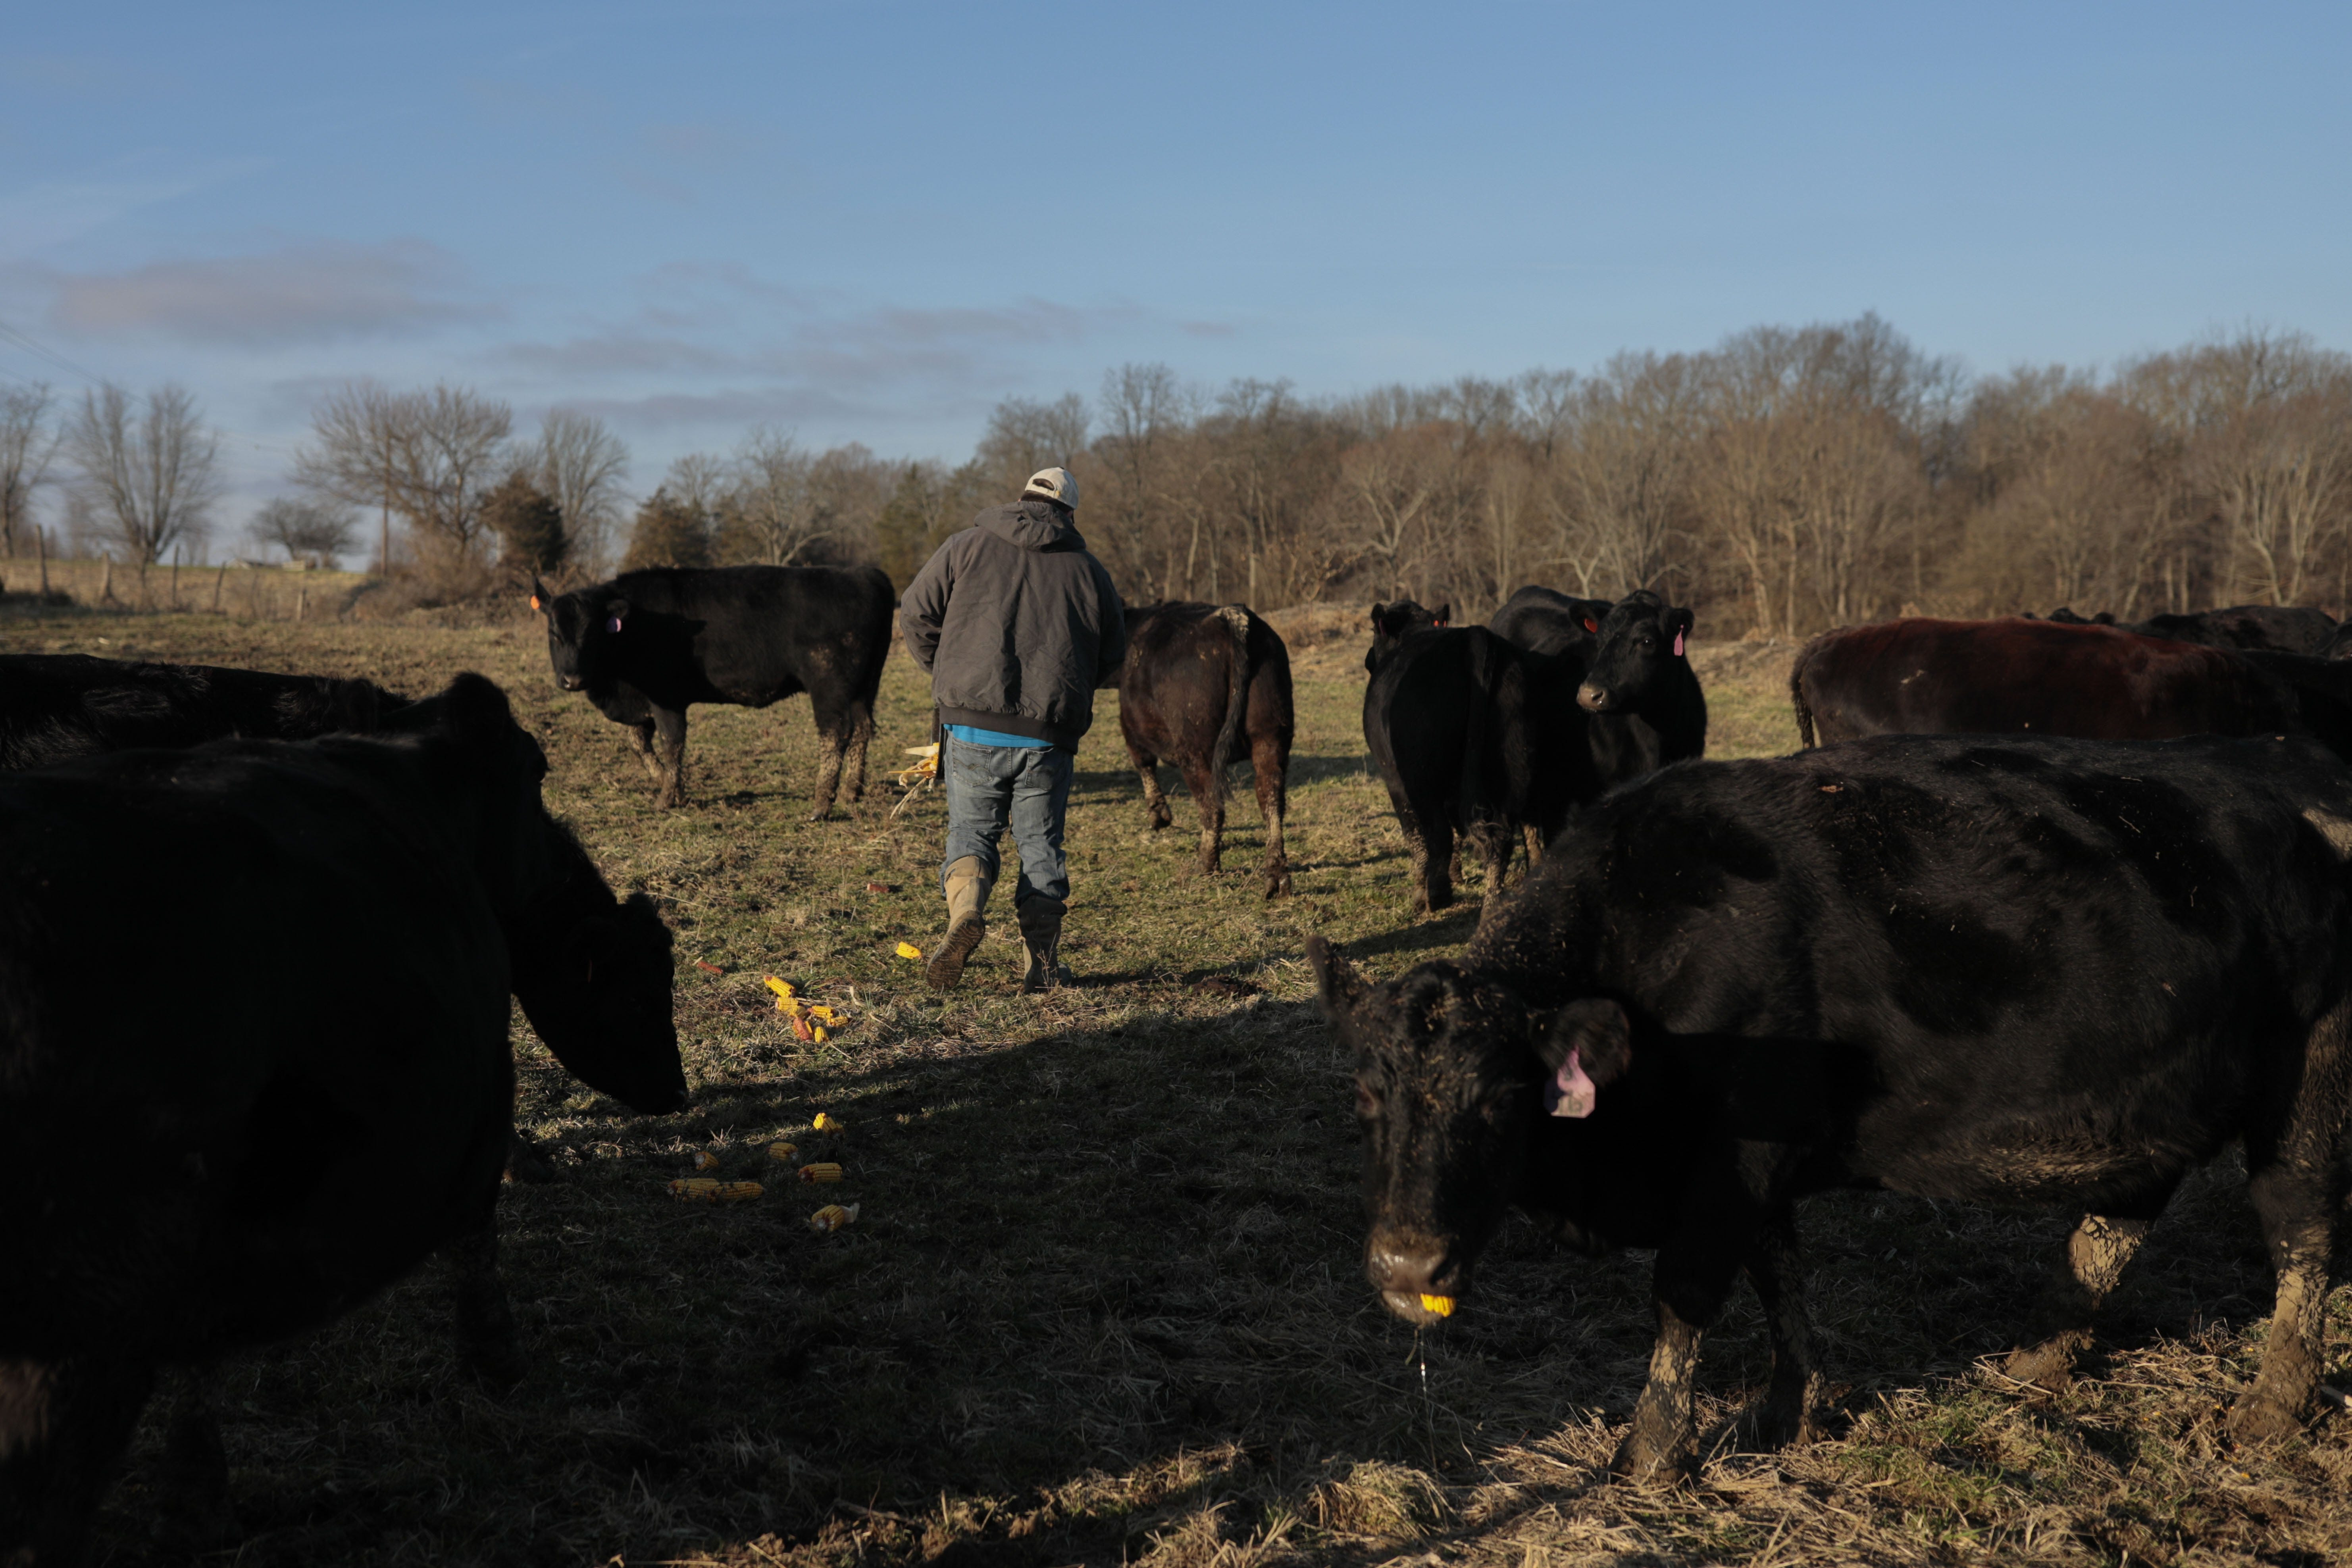 Nathan Brown feeds some of his cattle on Monday, January 6, 2020 at his farm in Hillsboro, Ohio. [Joshua A. Bickel/Dispatch]